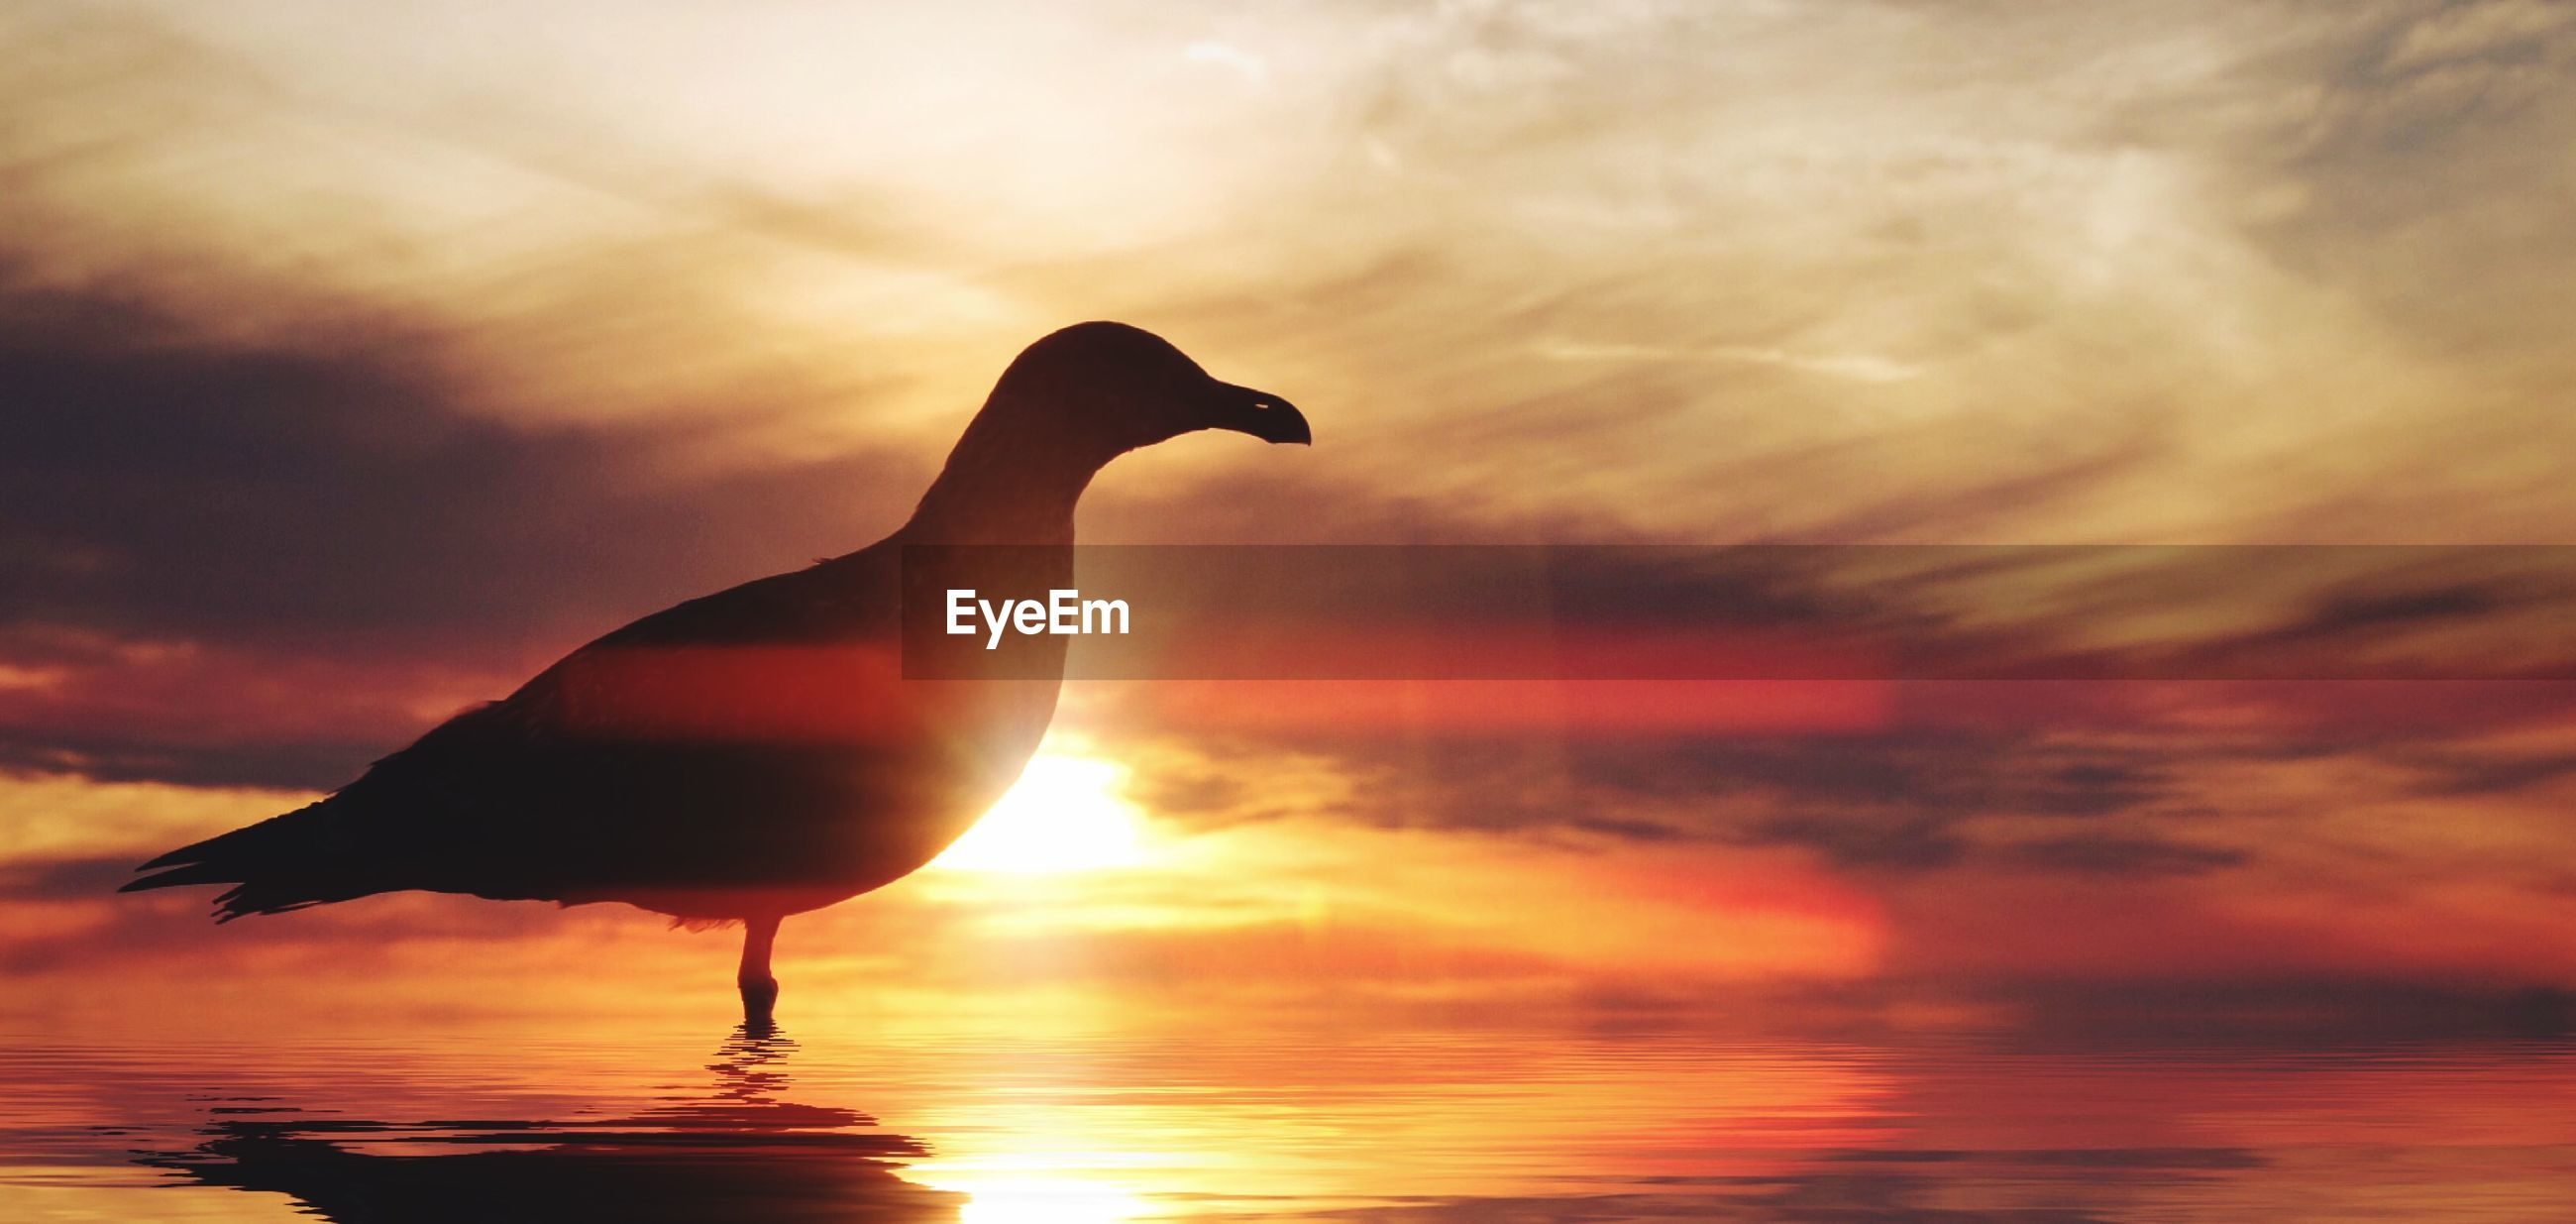 Digital composite image of silhouette seagull in water against sky at sunset